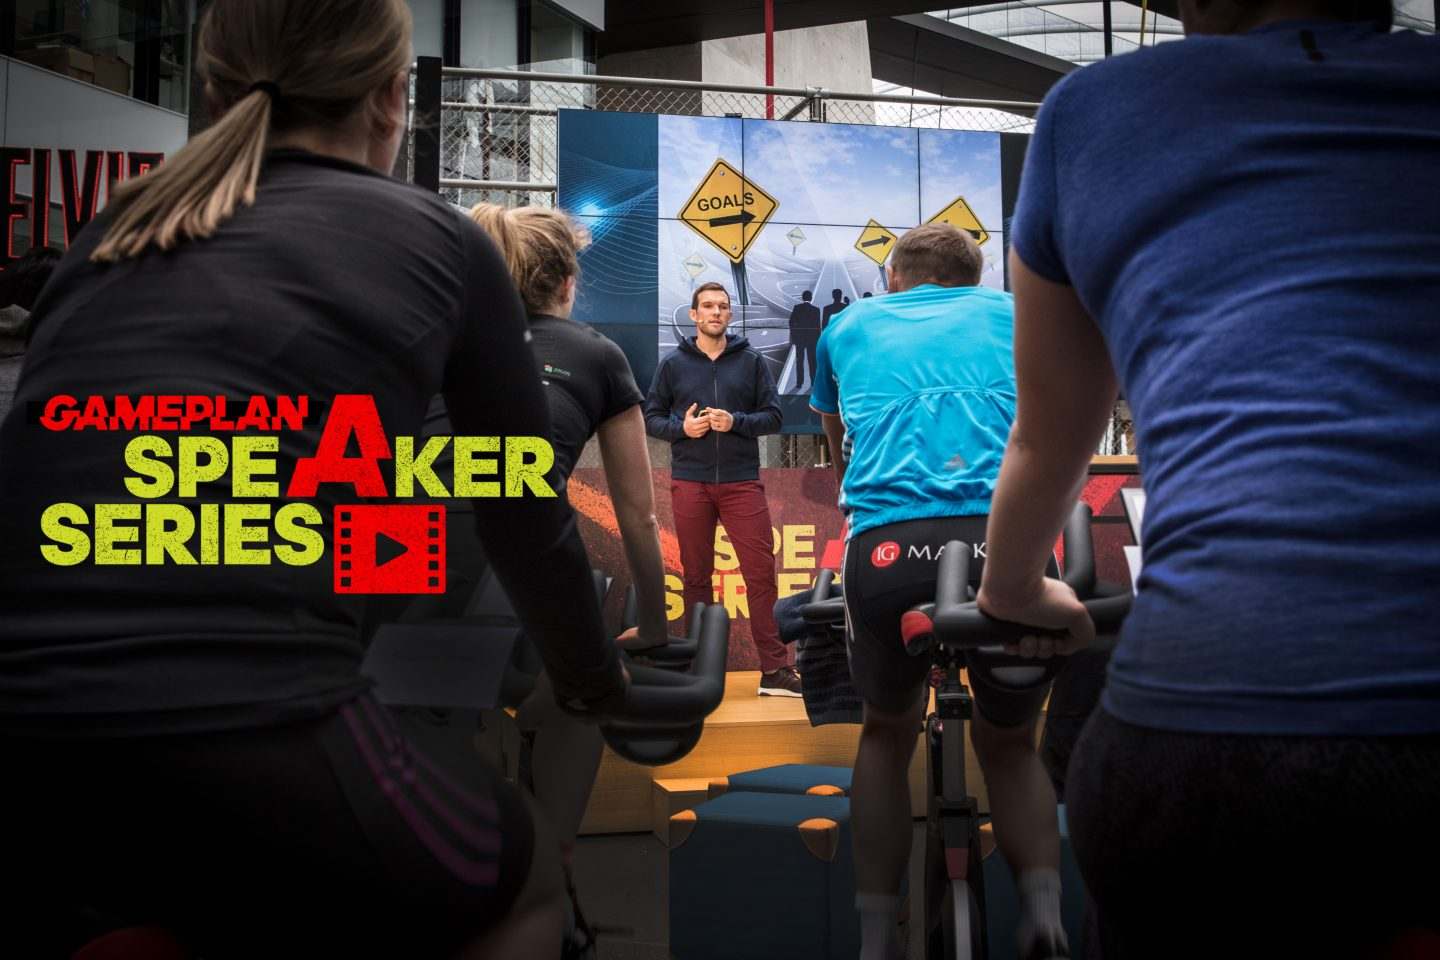 Man standing on stage delivering a speech in front of a group of indoor cyclists at the adidas HQ. GamePlan A, Marcus Leach, Speaker Series, goal-setting, success, public speaking, cycling, motivation